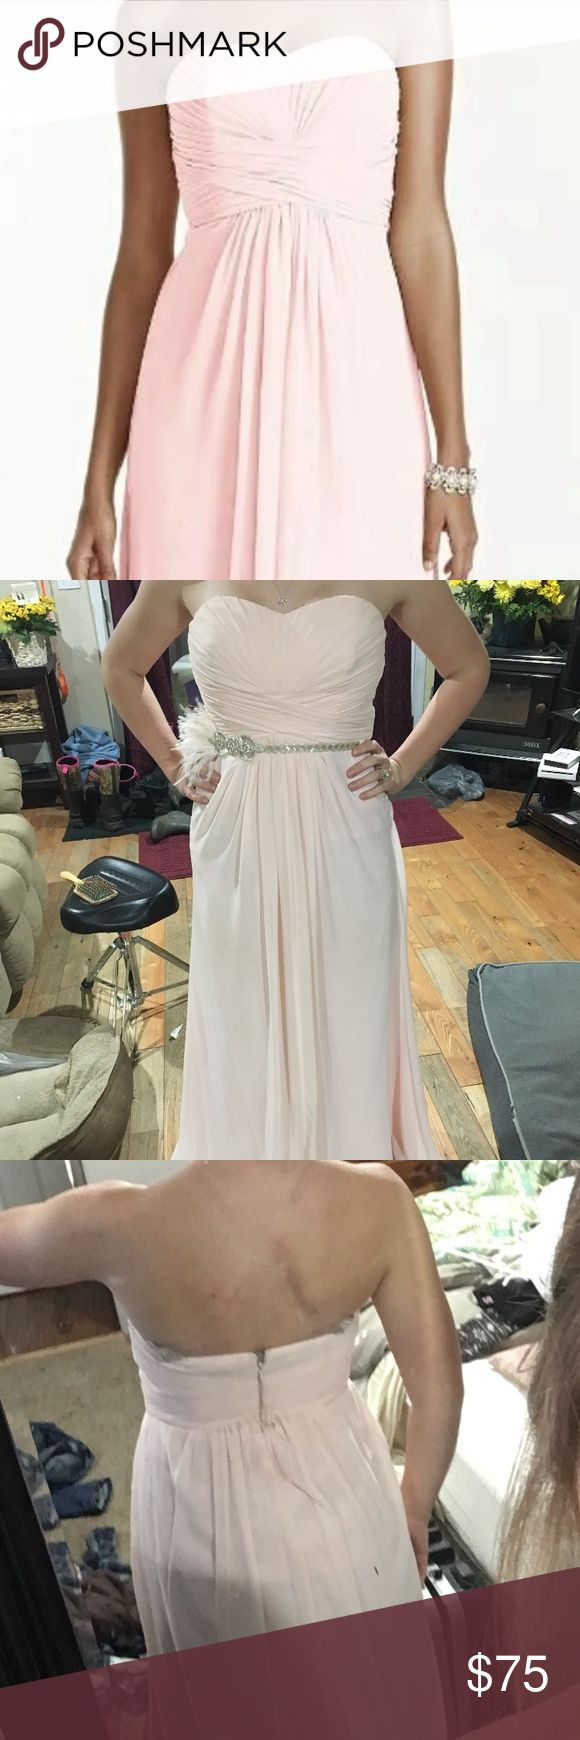 Davids bridal bridesmaids dress Petal Davids bridal bridesmaid stress in petal pink. Size 6. No alterations done. May have small spots on the bottom from being worn, but not noticeable. David's Bridal Dresses Strapless